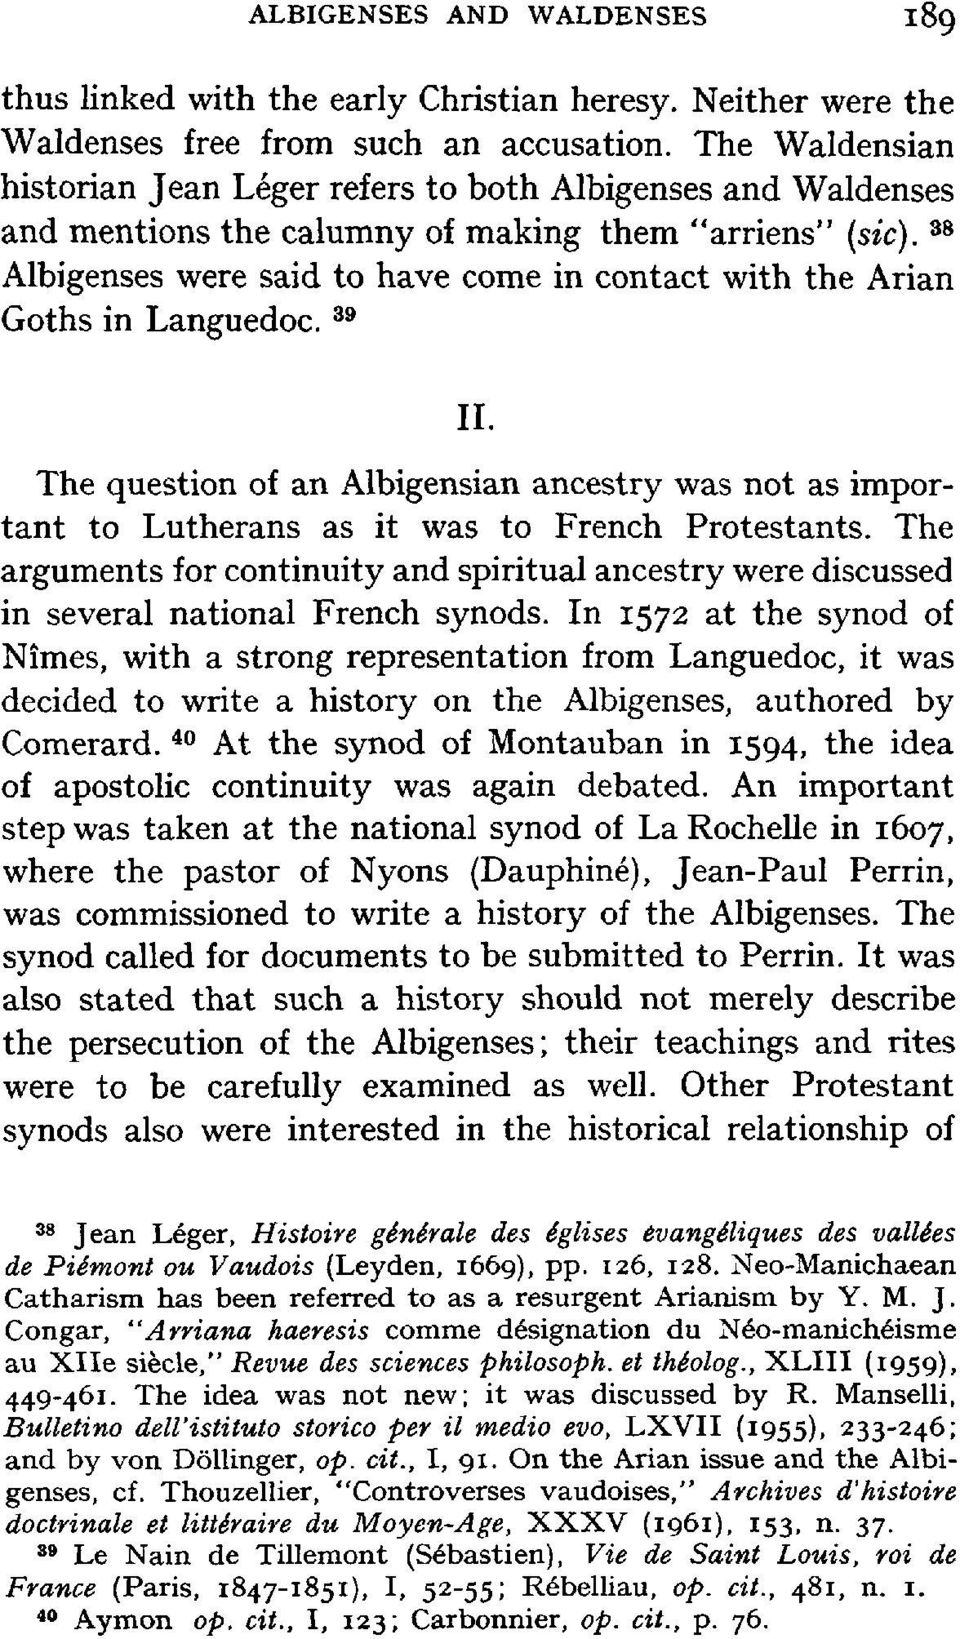 38 Albigenses were said to have come in contact with the Arian Goths in Languedoc. 39 The question of an Albigensian ancestry was not as important to Lutherans as it was to French Protestants.